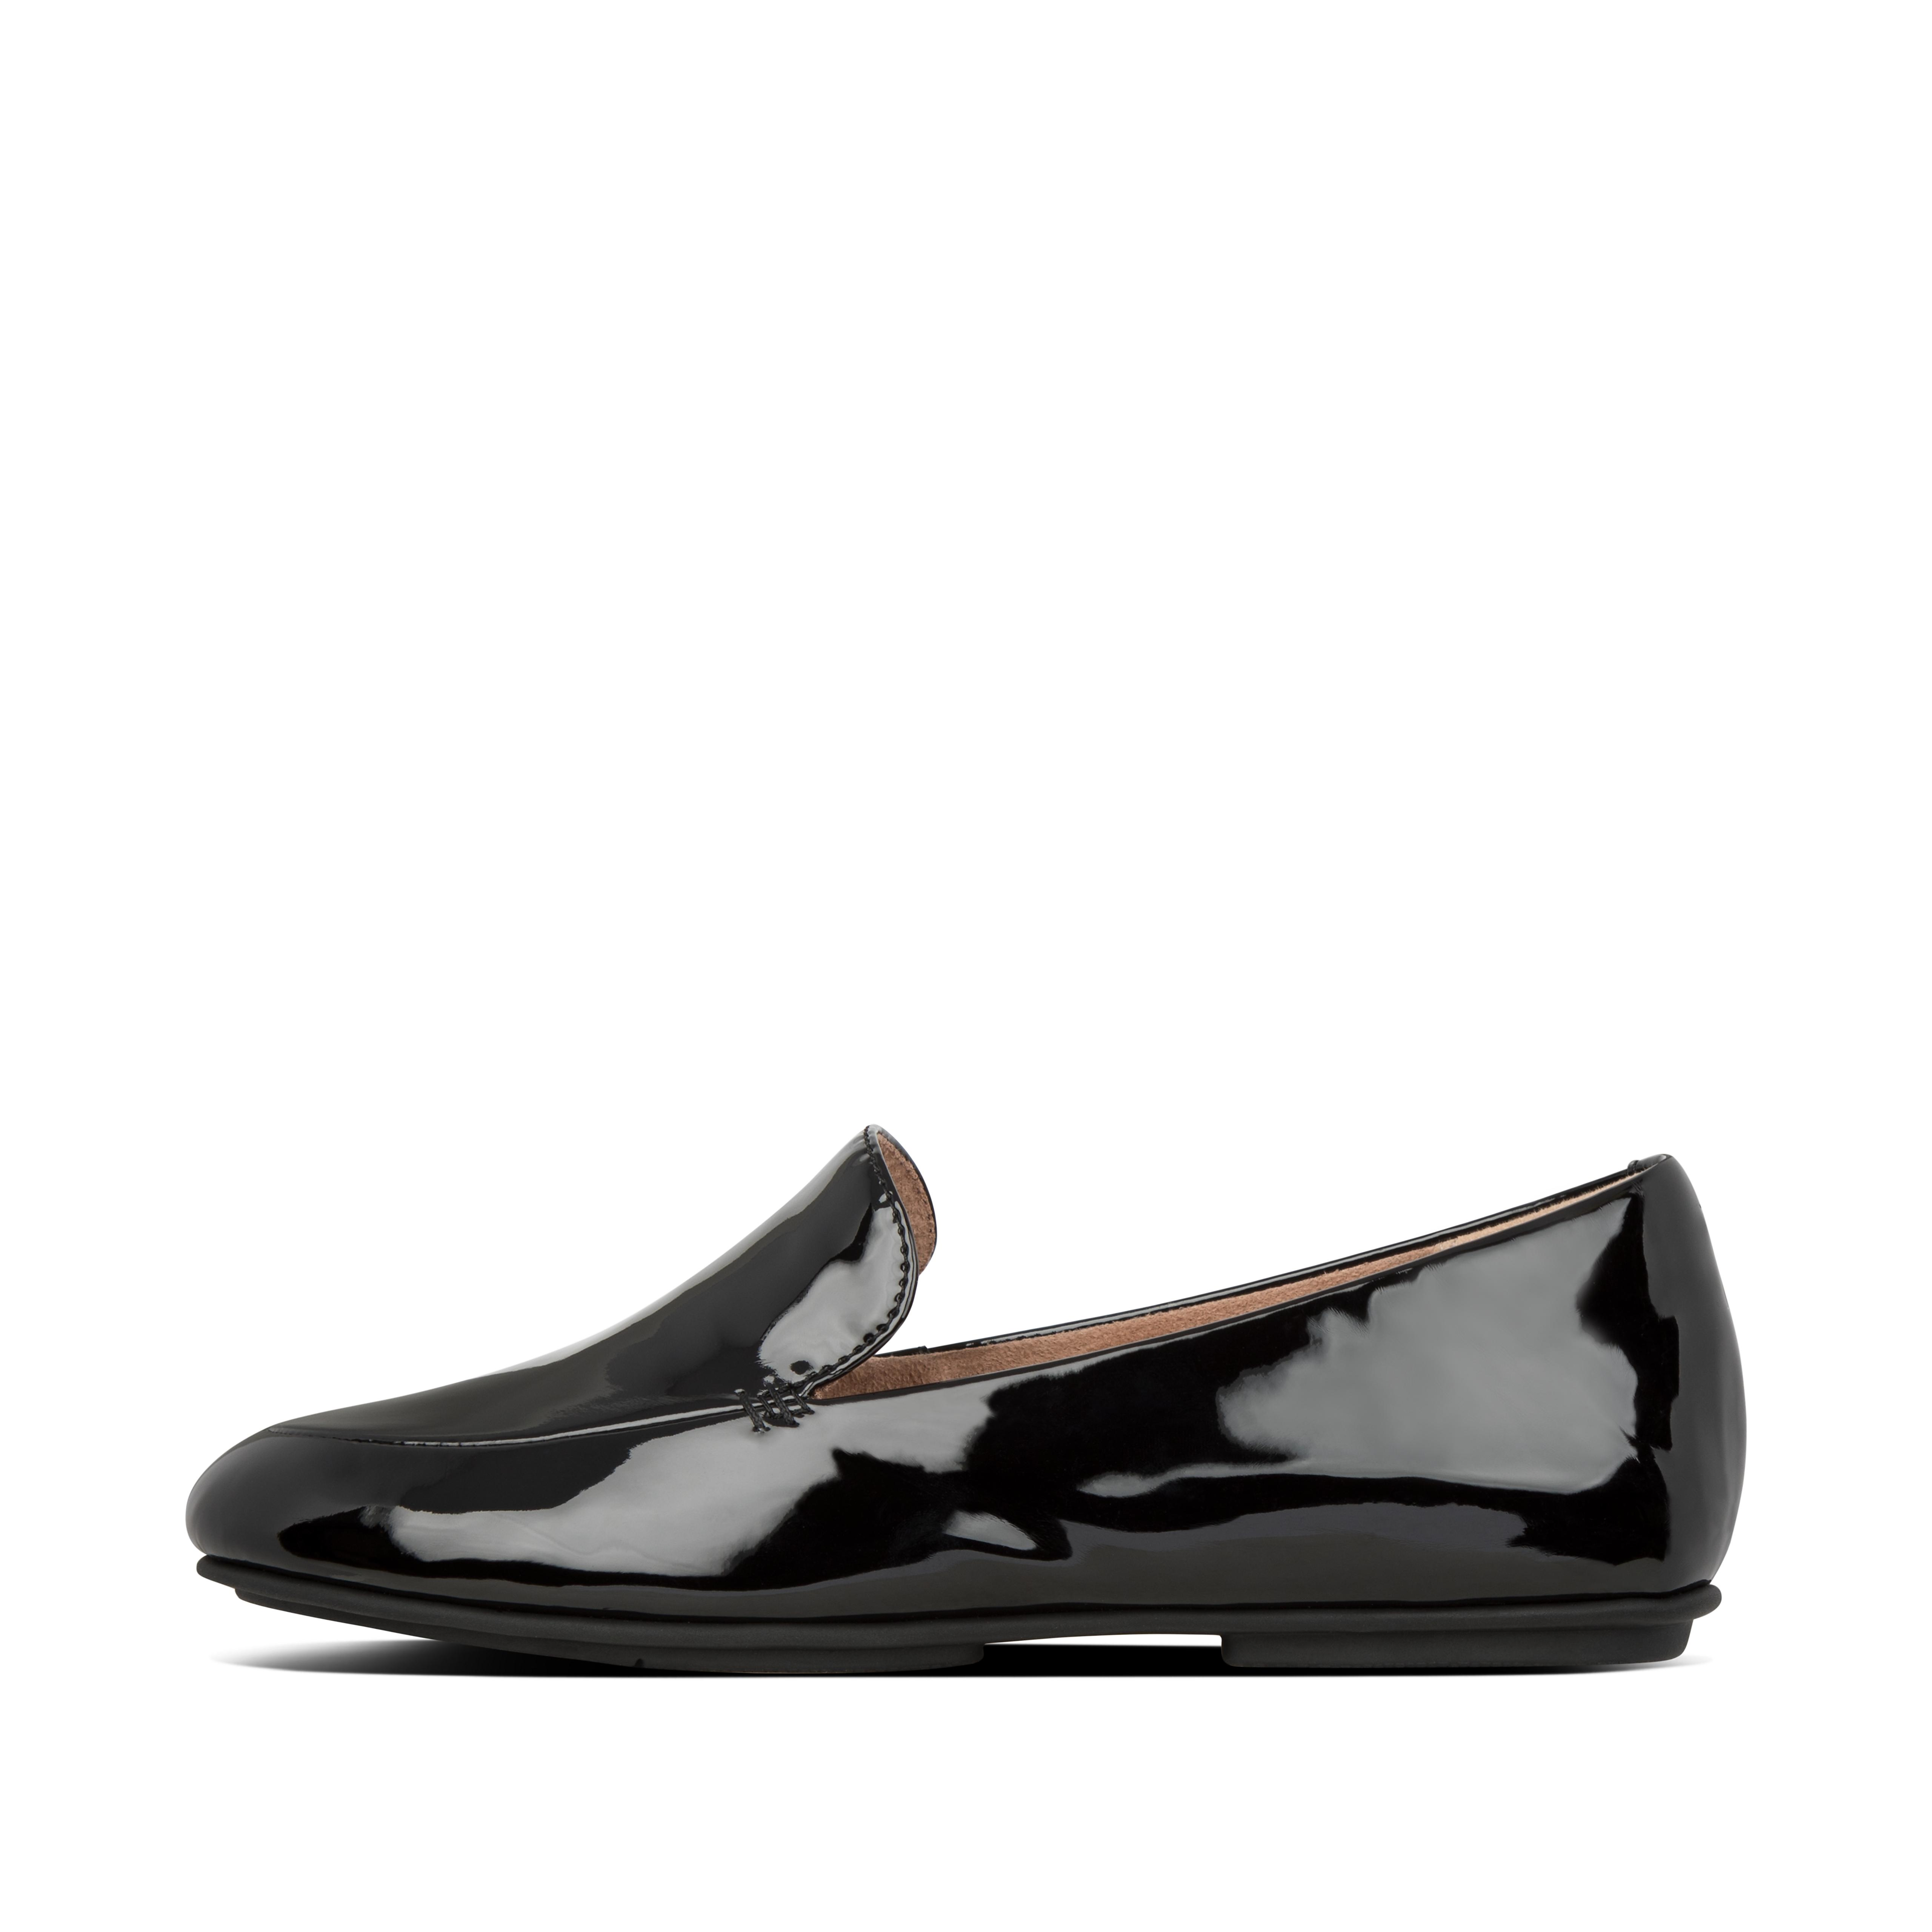 Our Lena loafers are ultimate proof that less is more. Ultra-minimal, light, with an androgynous aesthetic, these\\\'ll add class to every outfit you wear them with. Yet they deliver major comfort and cushioning thanks to their anatomically shaped footbed and our \\\'bouncy\\\' Dynamicush™ tech hidden in a classic \\\'flat sole\\\'. This version in soft patent faux-leather.